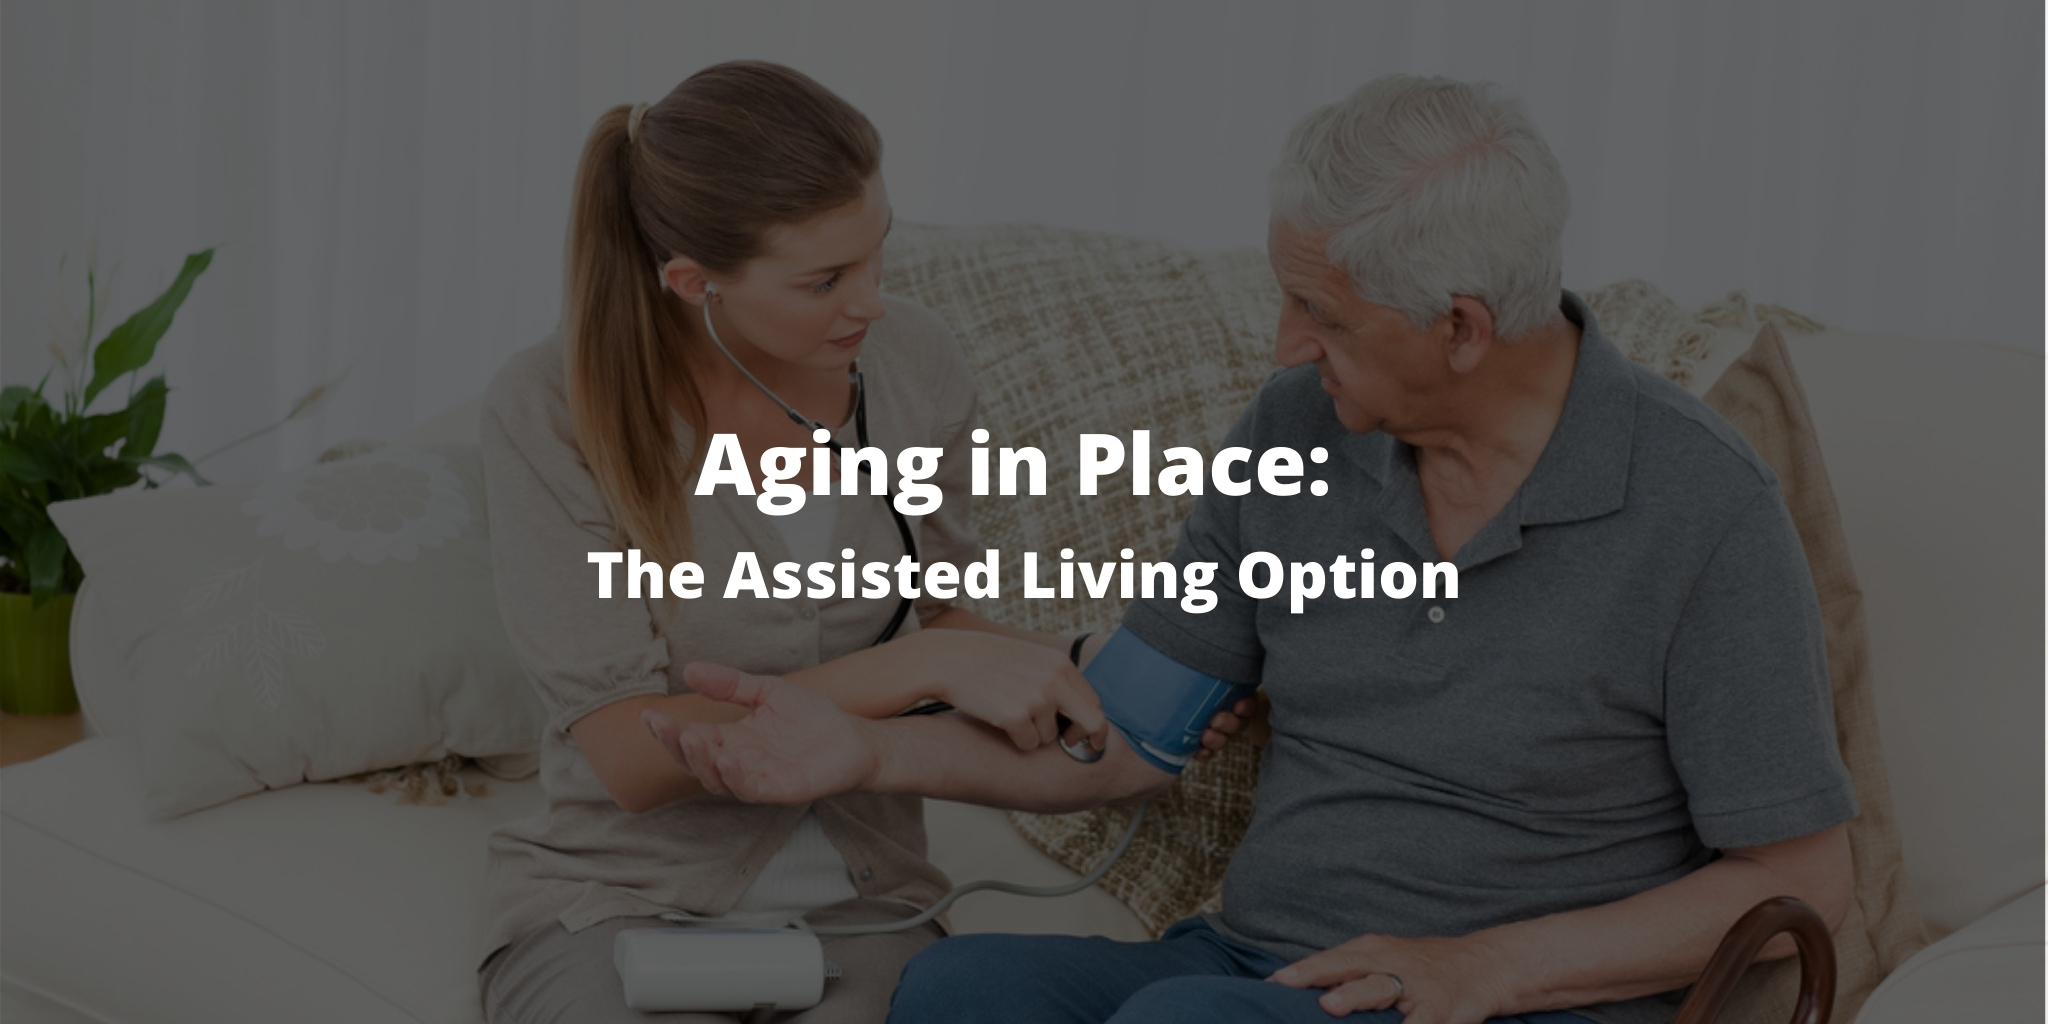 Aging in Place: The Assisted Living Option